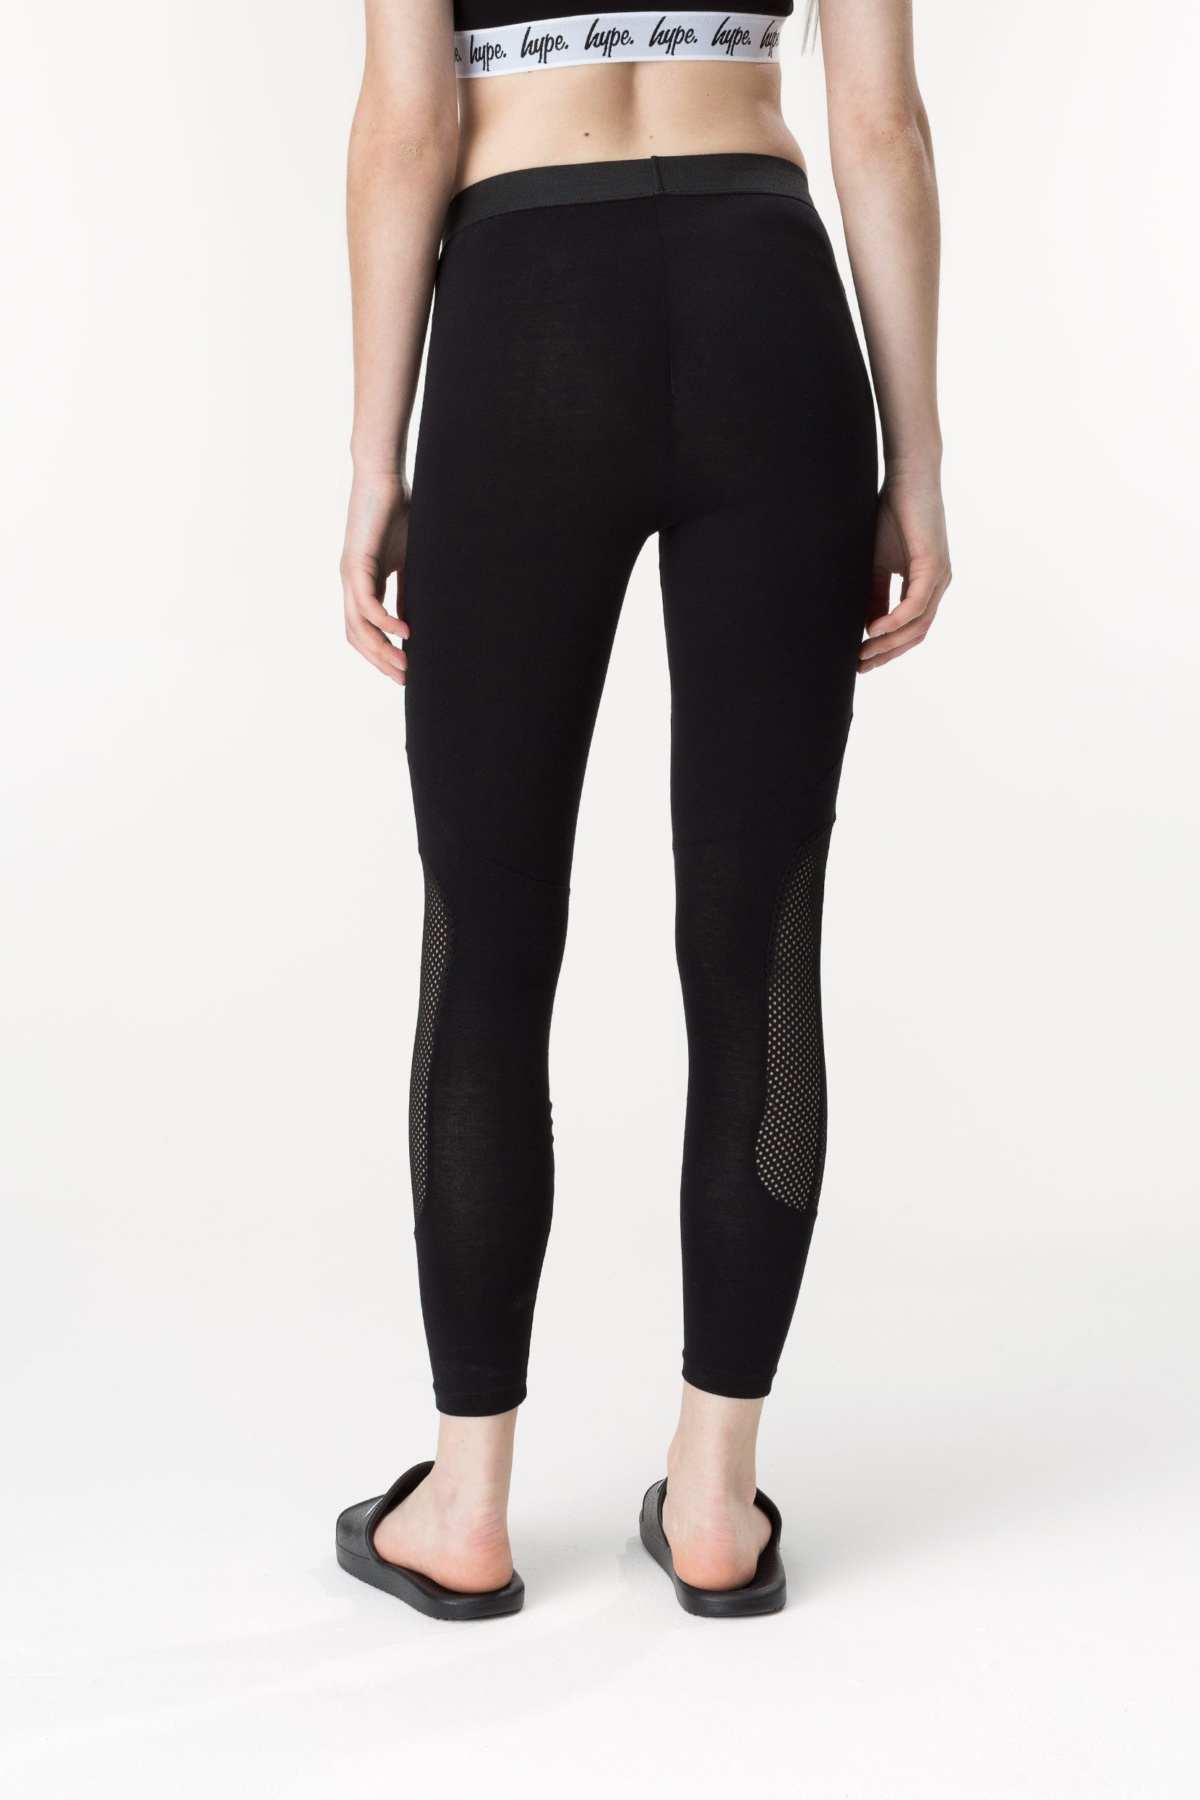 HYPE Black Mesh Women's Leggings